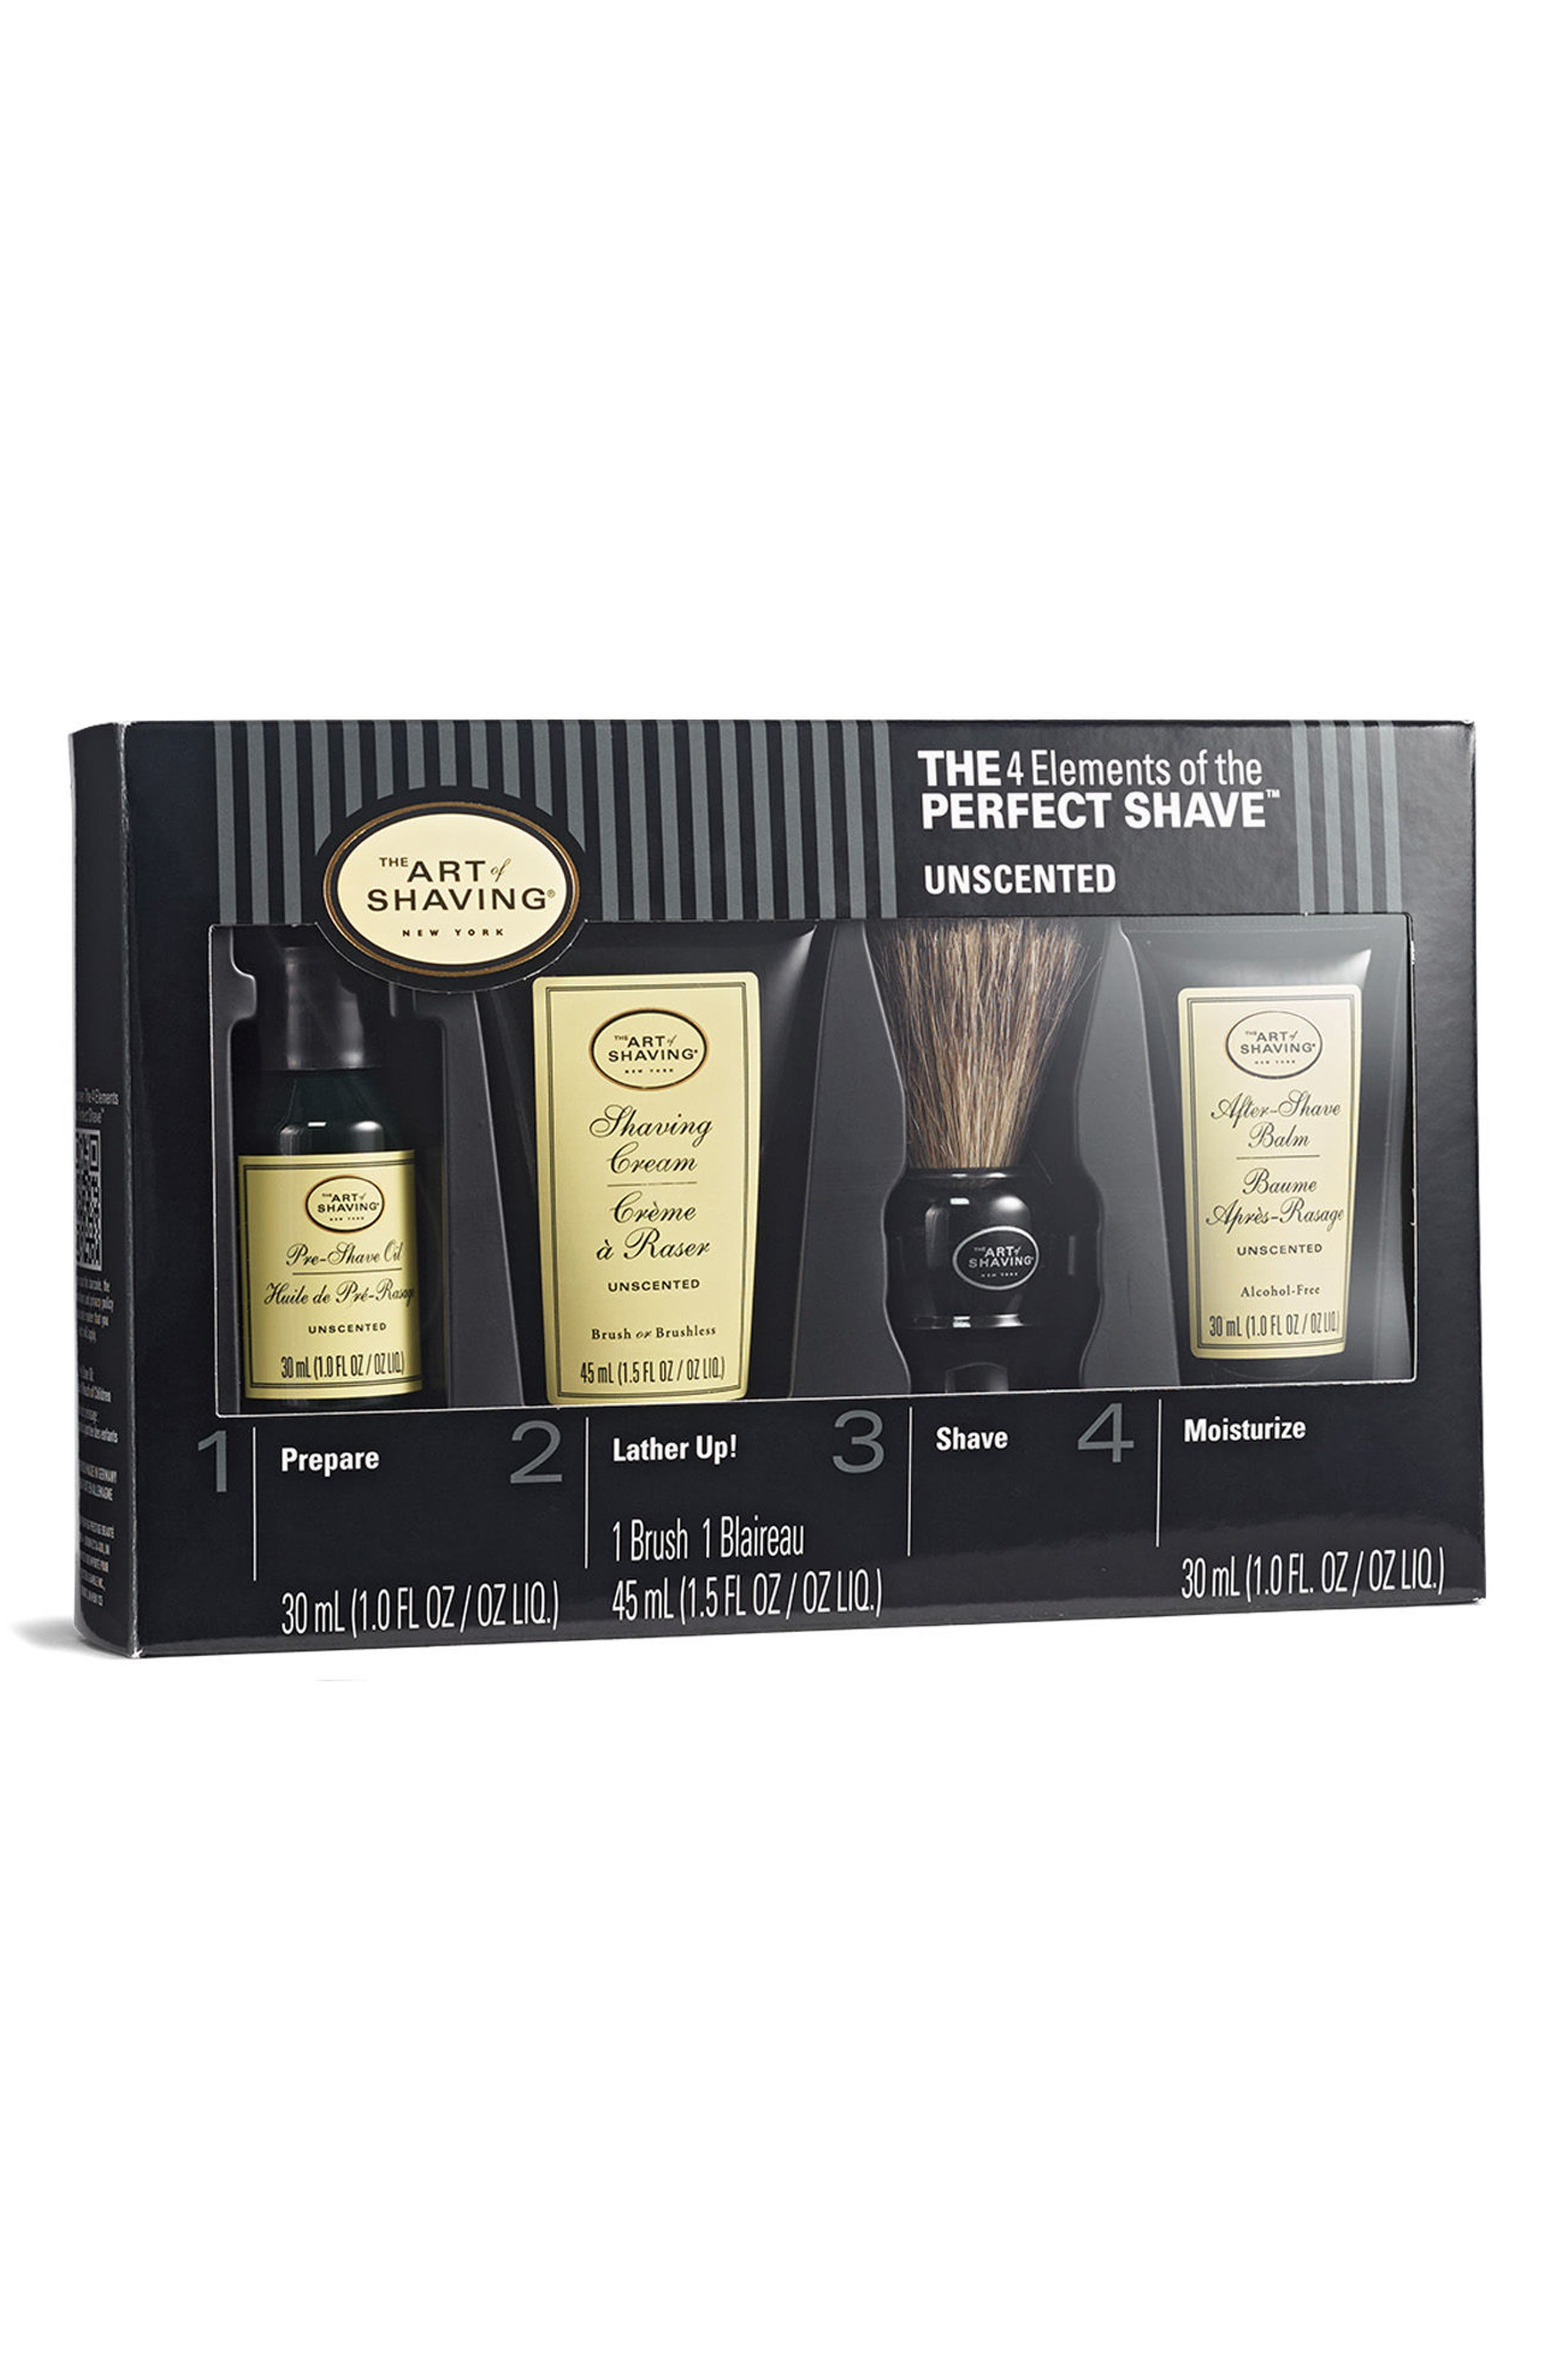 The Art of Shaving® Unscented Mid Size Kit ($81 Value)